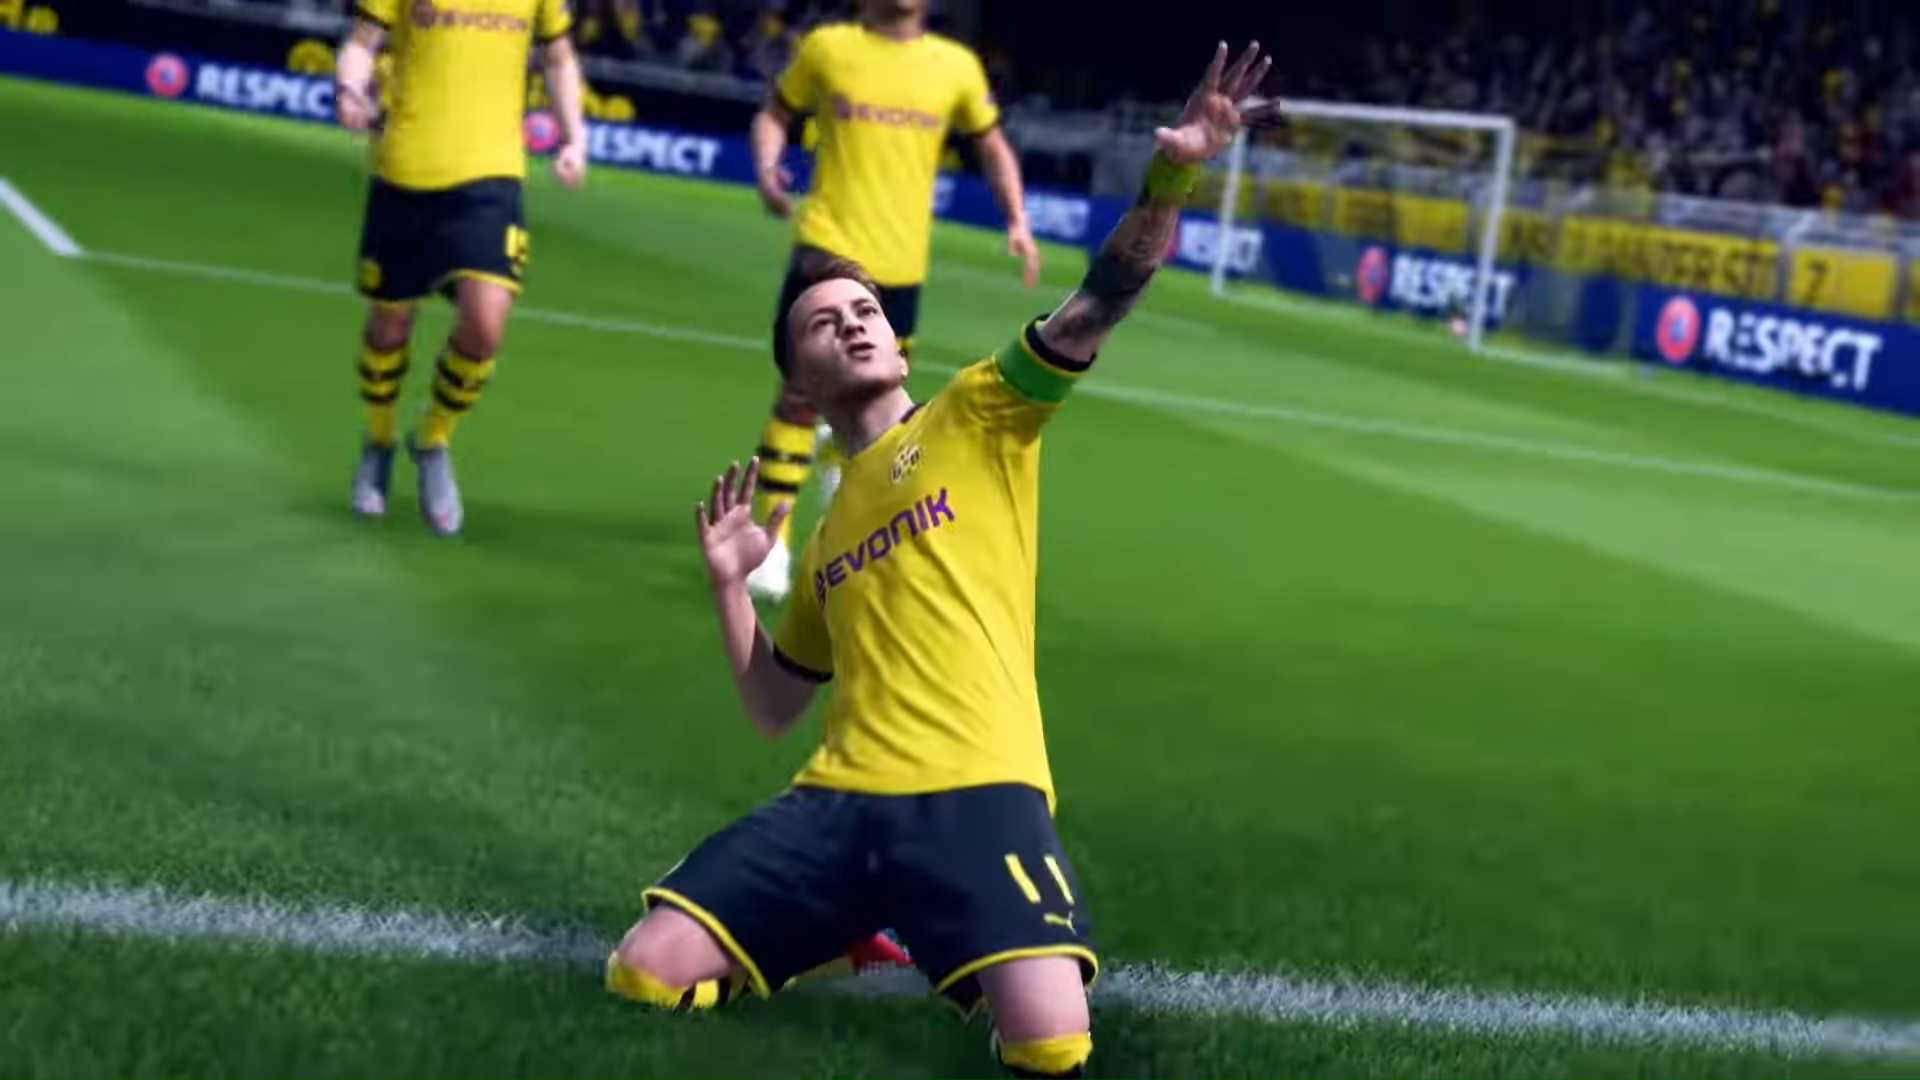 Fifa20 Is Almost Out Here S Everything You Need To Know From The Trial Version Before It Officially Releases Easports Fifa F Fifa 20 Fifa Video Game News